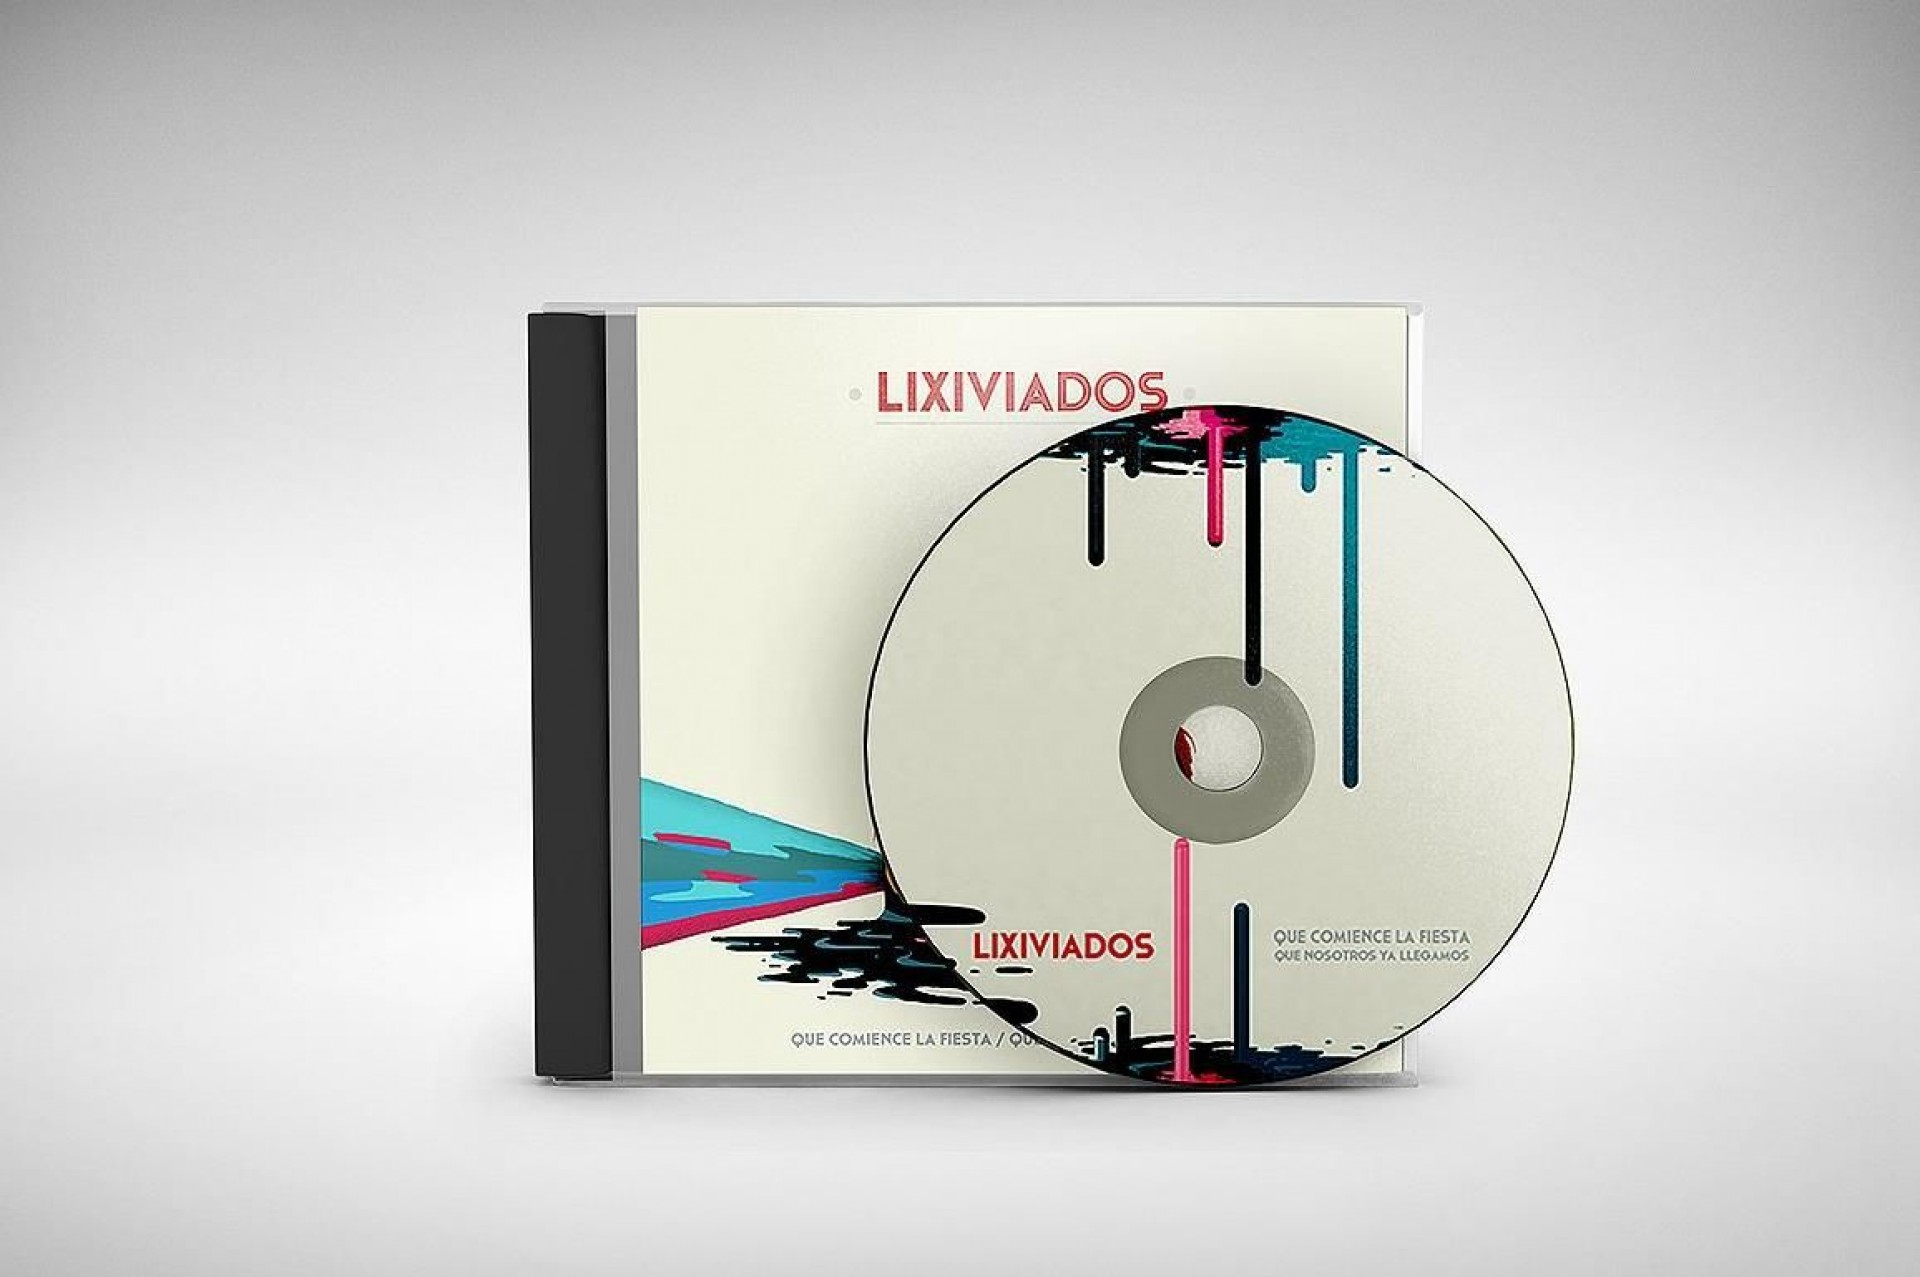 008 Unusual Cd Label Design Template Free Download Concept  Cover Psd1920